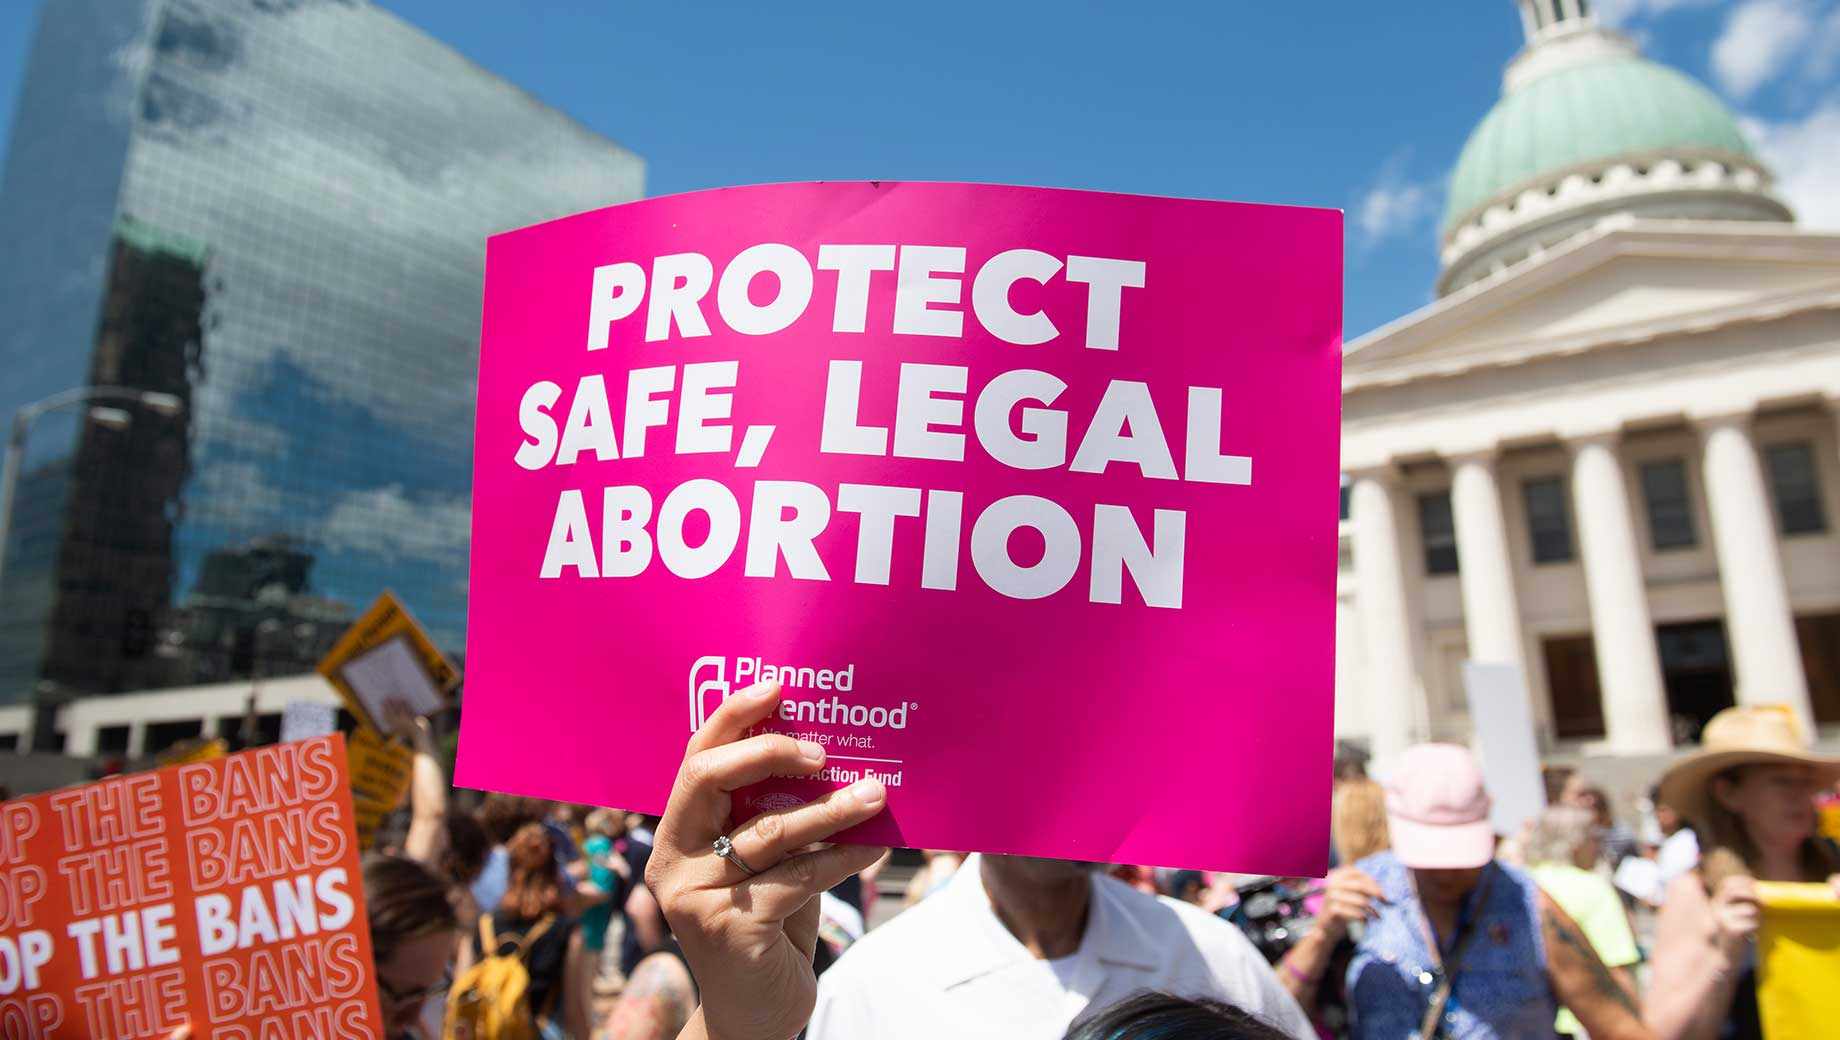 Appeals Court Lets Texas Temporarily Resume Extreme Anti-Abortion Law